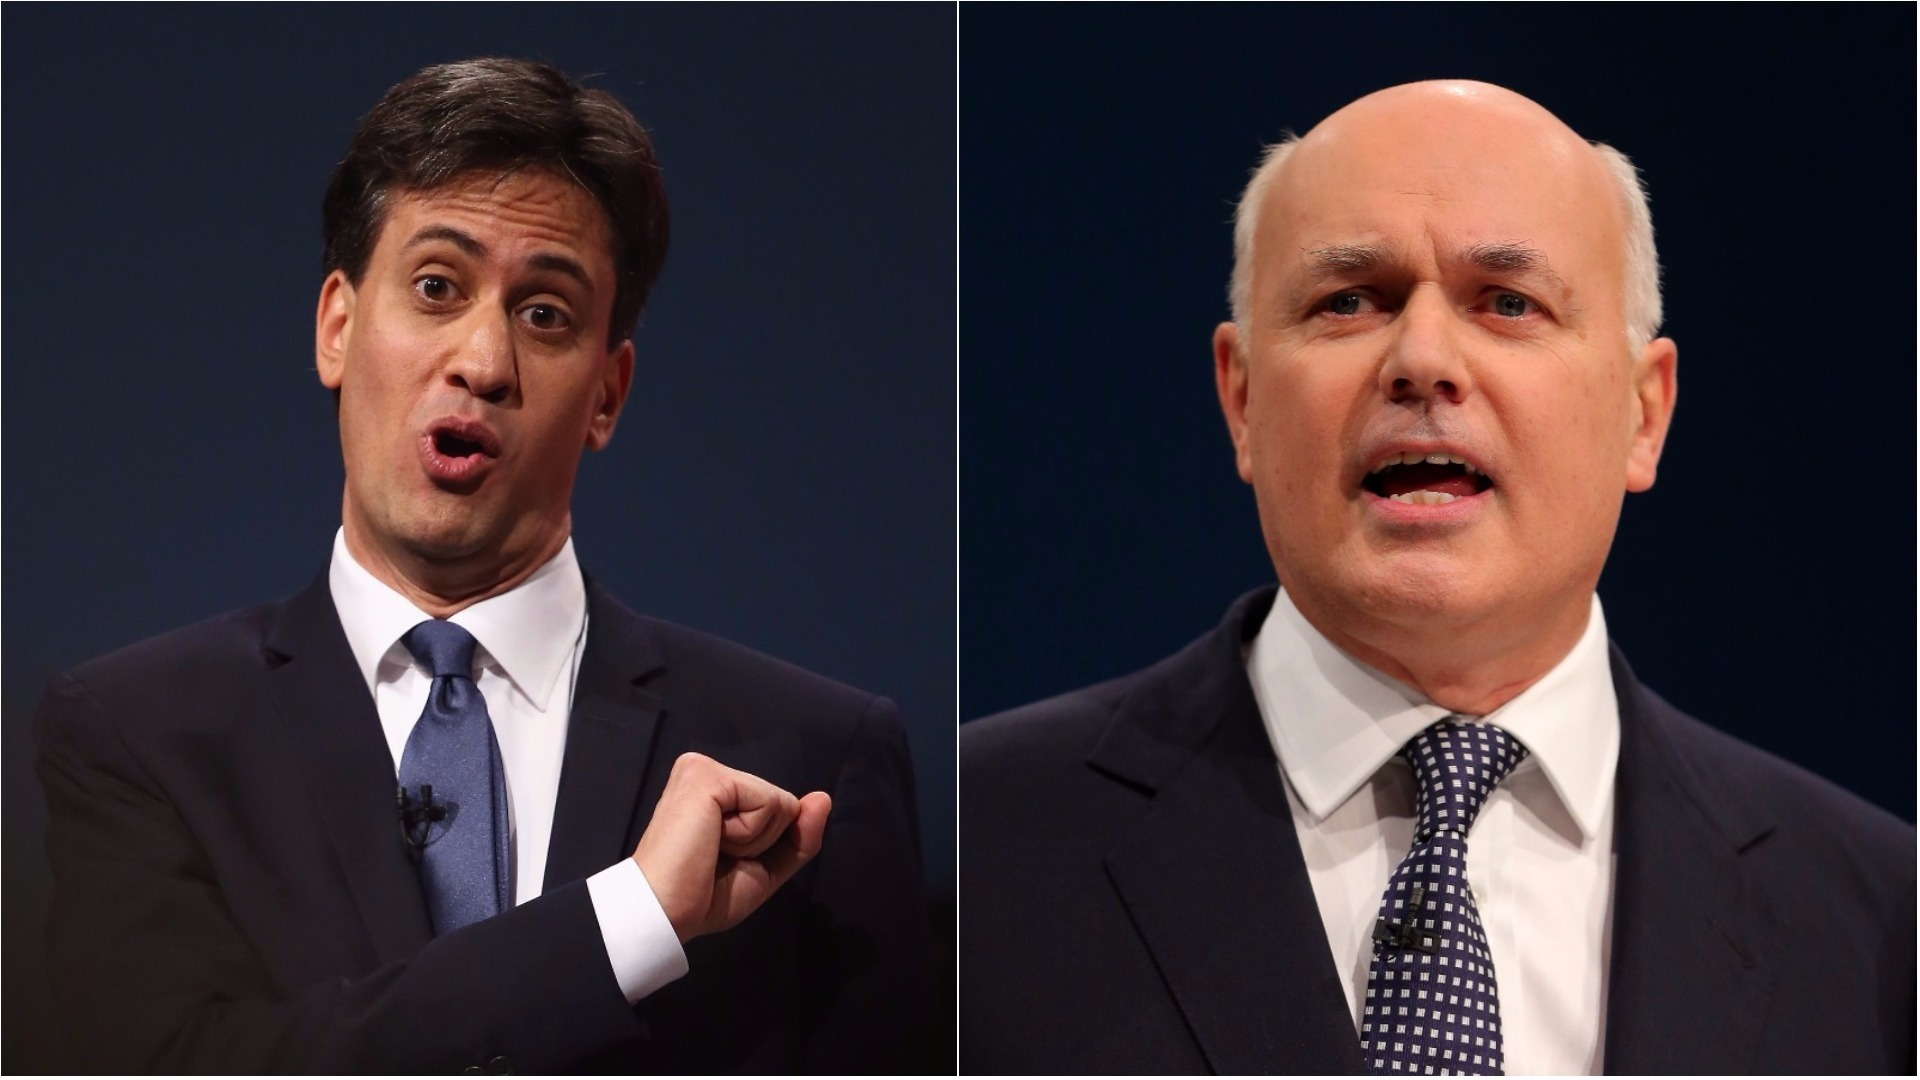 Ed Miliband and Iain Duncan Smith will be on air on Radio 2 (Dan Kitwood, Getty Images/PA)